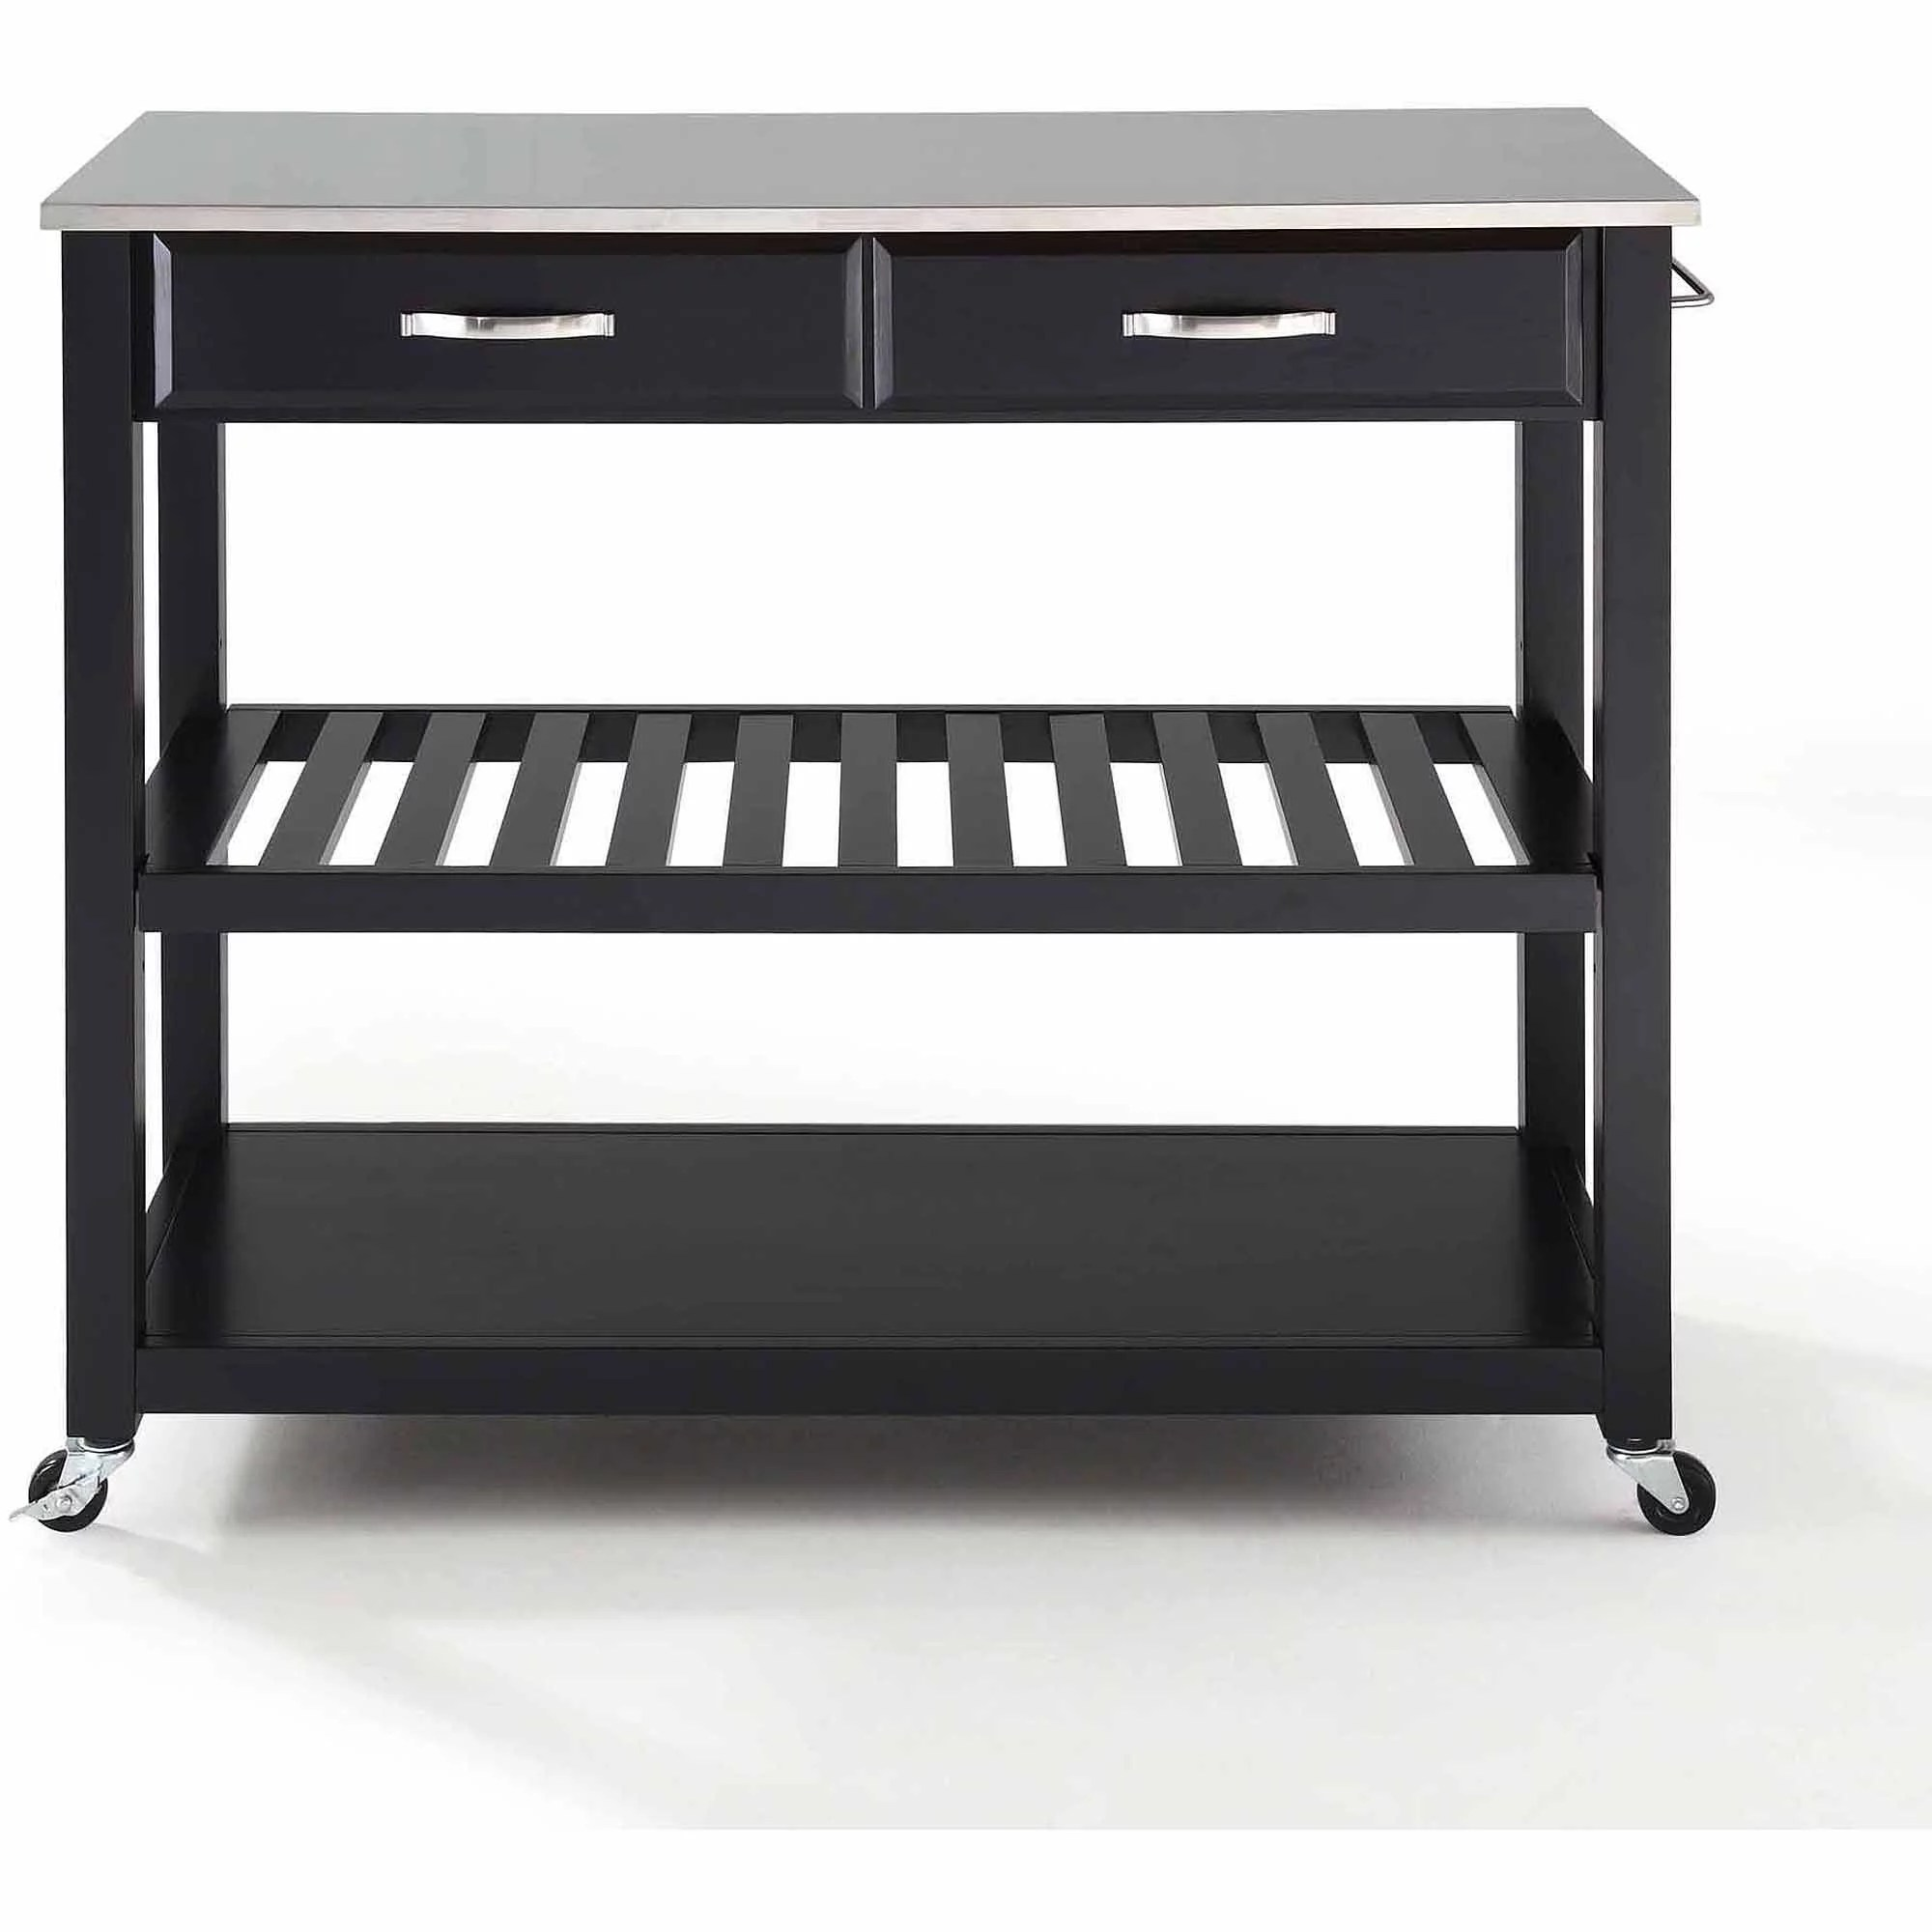 stainless steel kitchen cart backsplash tile crosley furniture top with optional stool storage walmart com